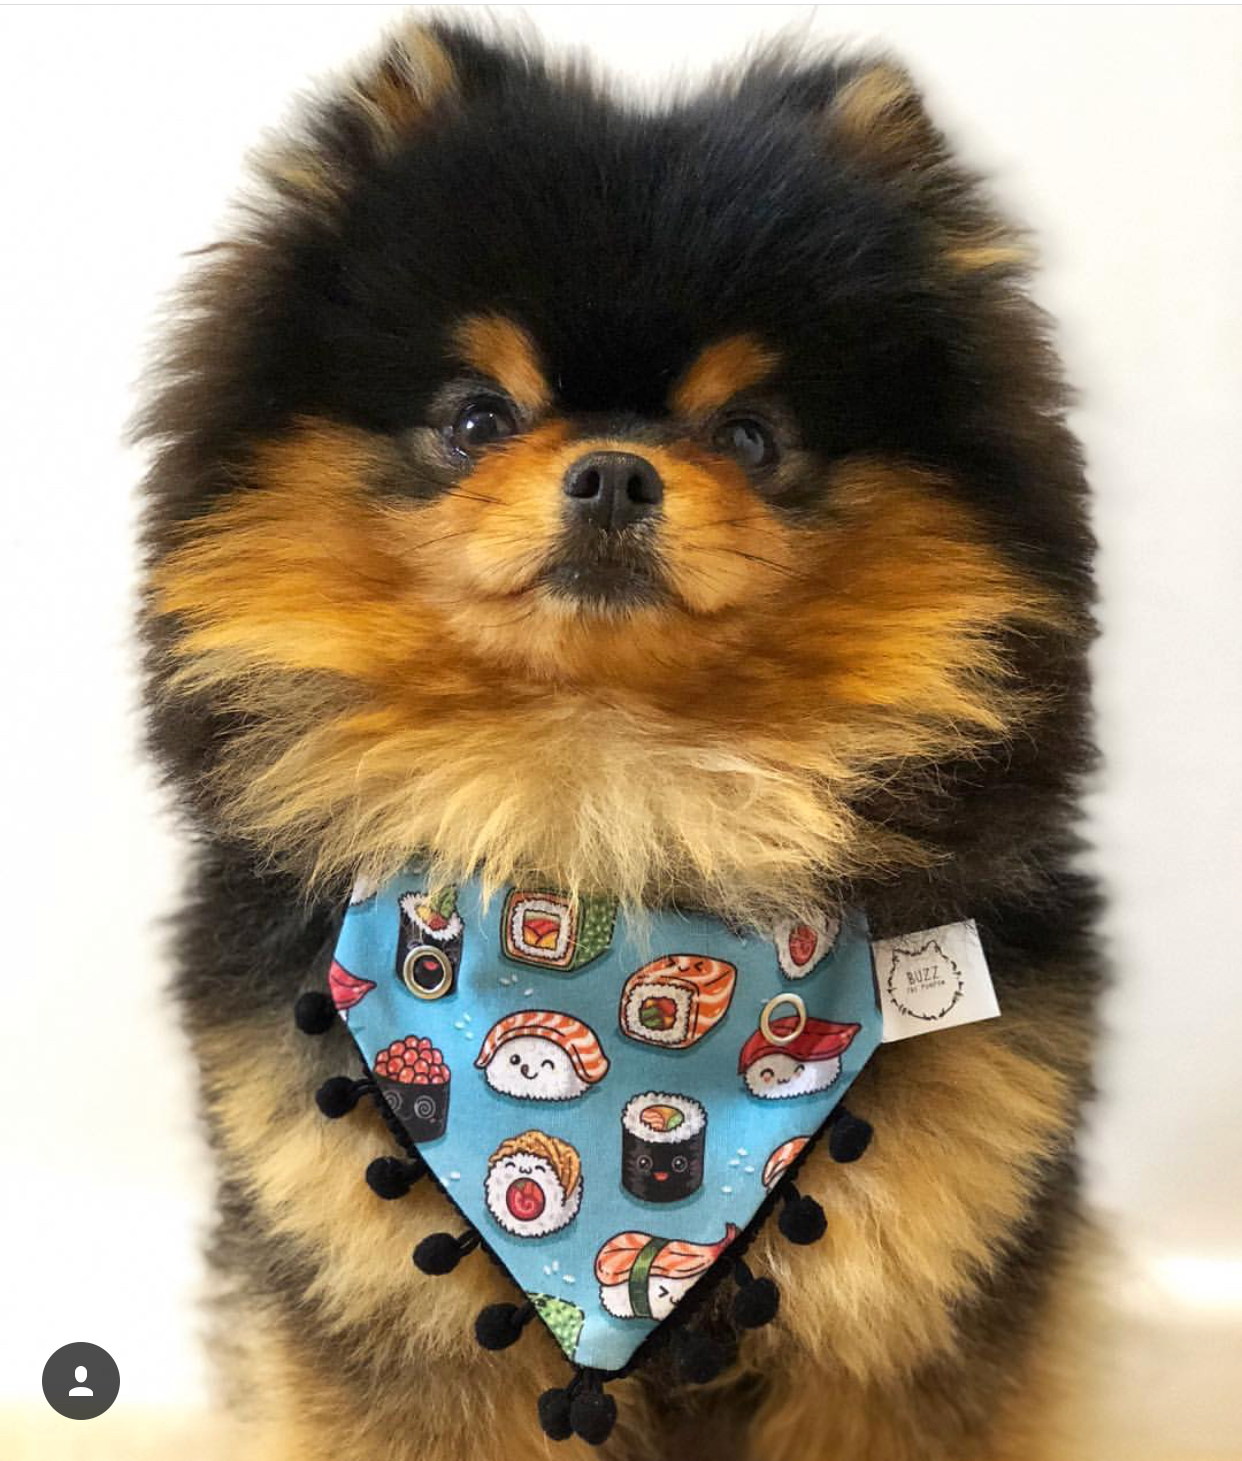 @BUZZ_ THE _POMPOM   Living the good life in UK, we adore him and her mom. This super well trained buddy melt our heart everyday